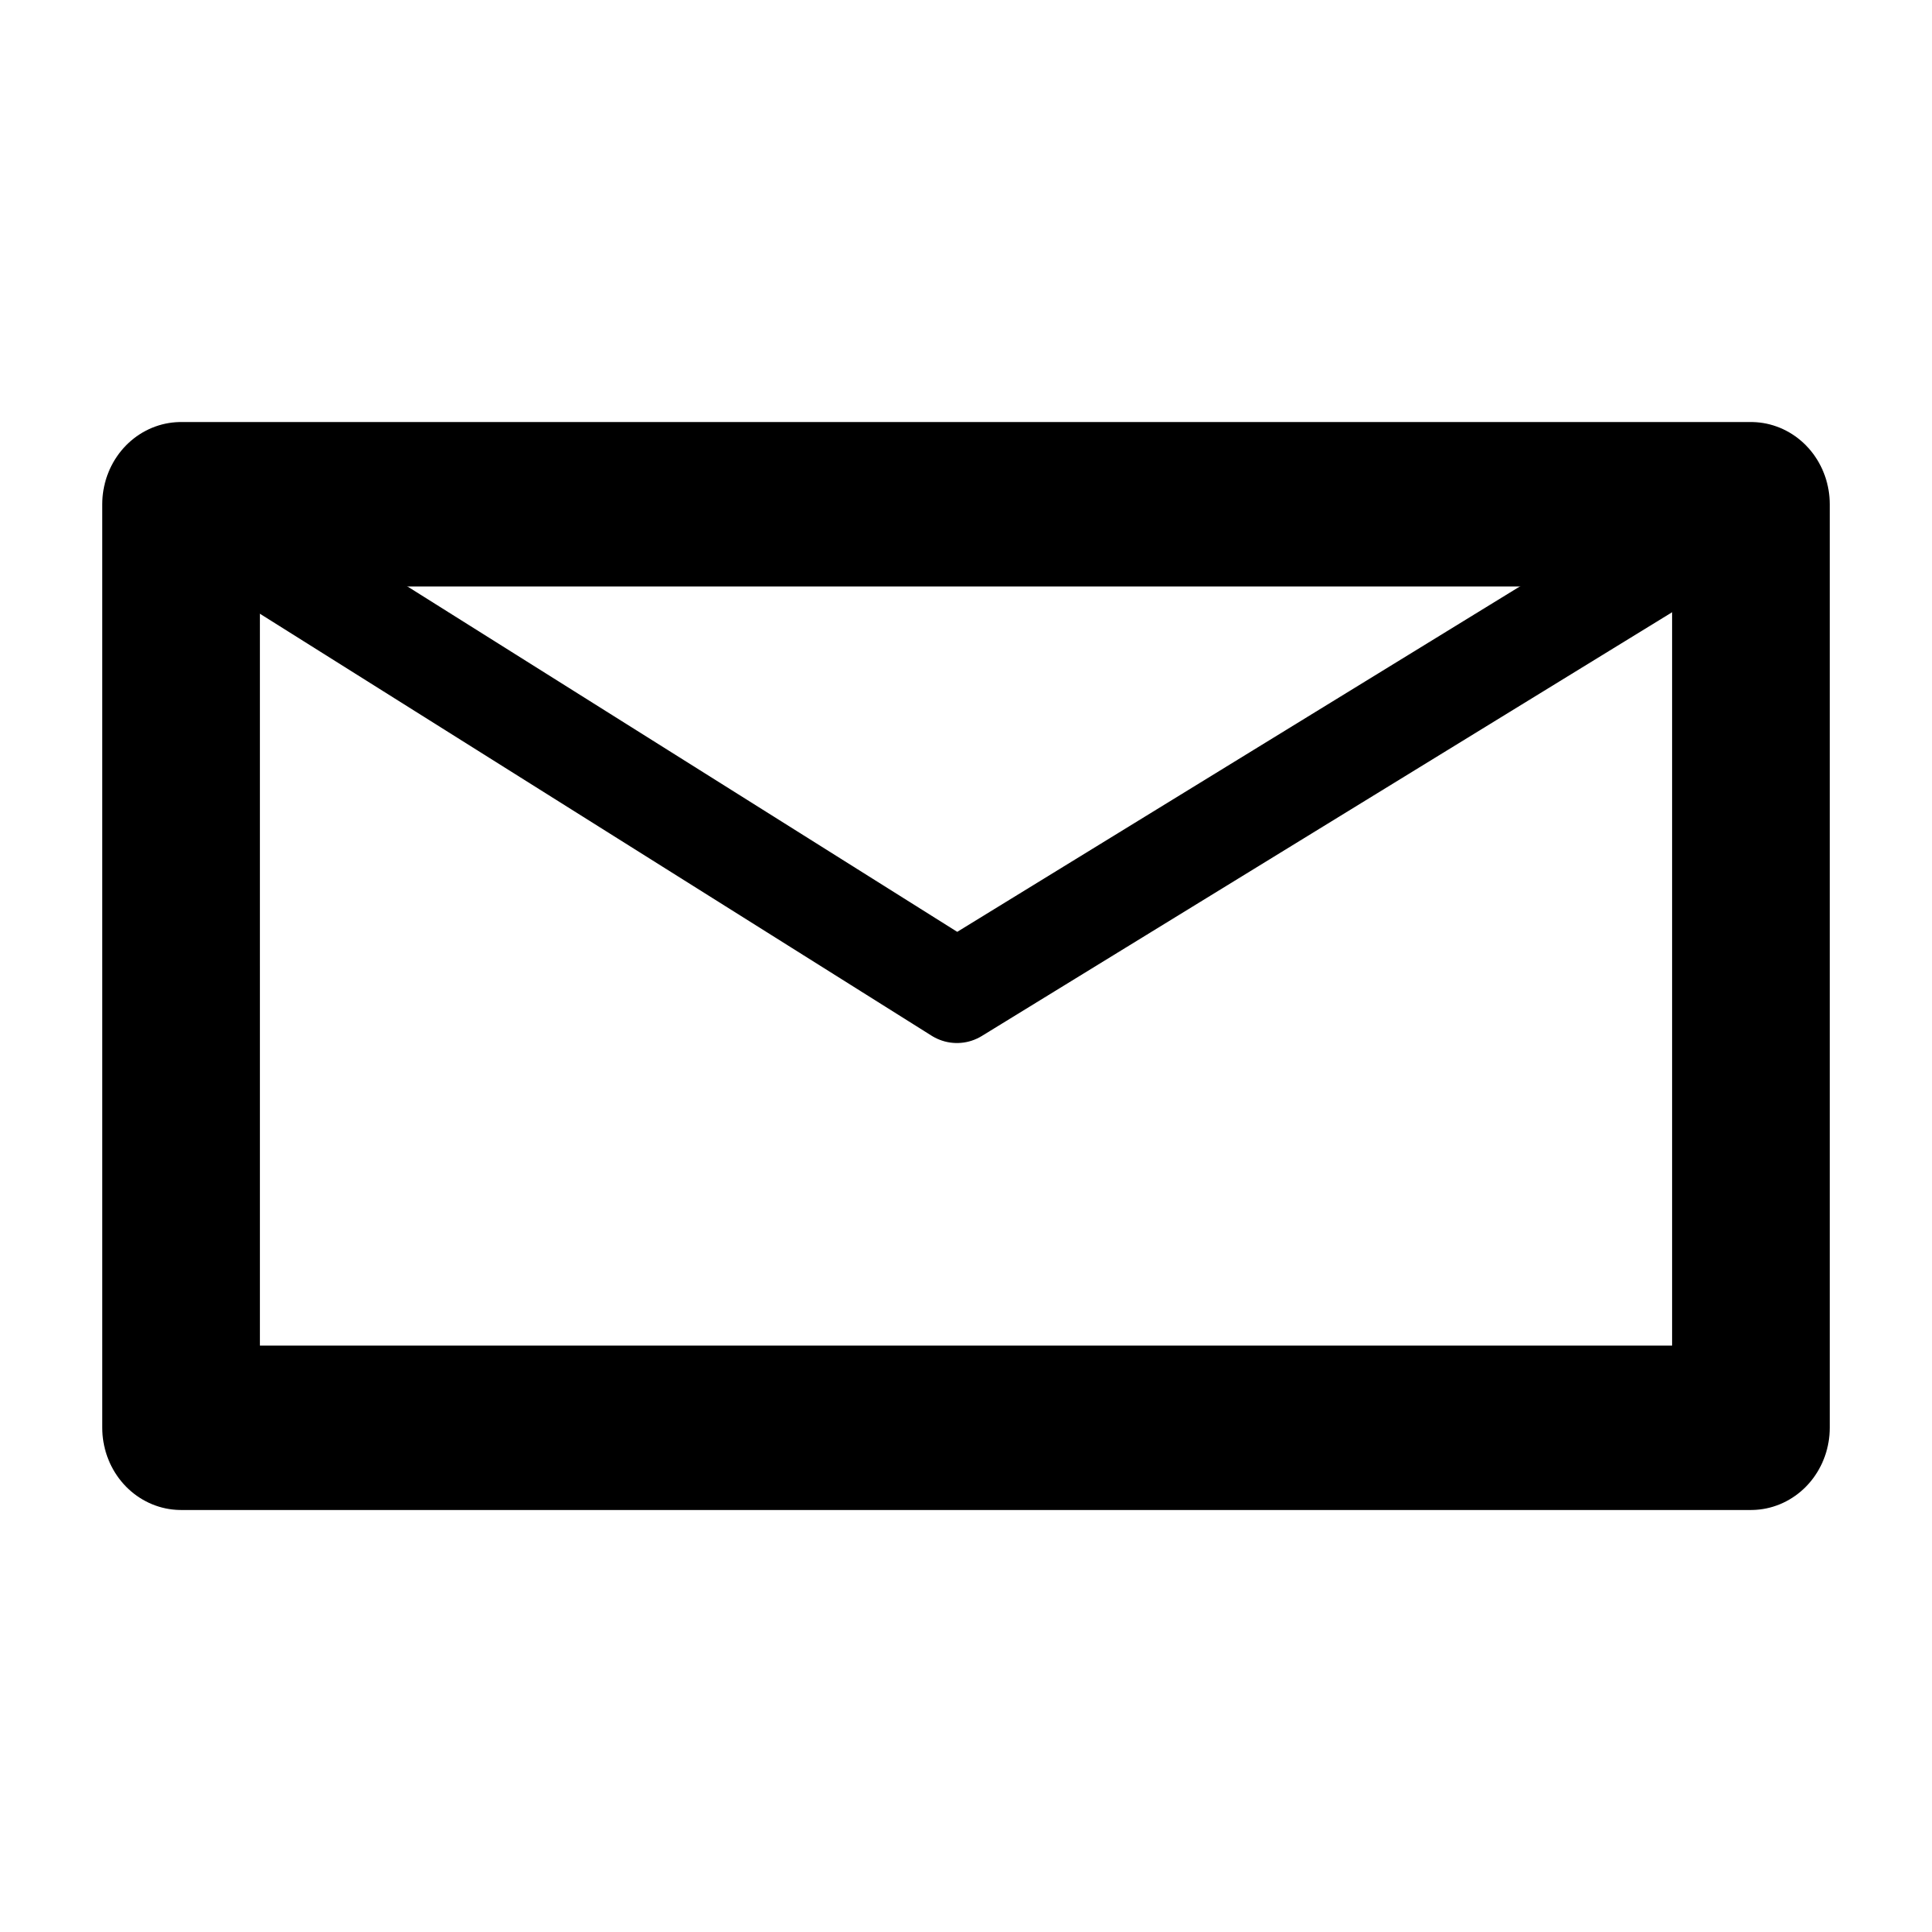 Mail icon png transparent. Mono icons free and